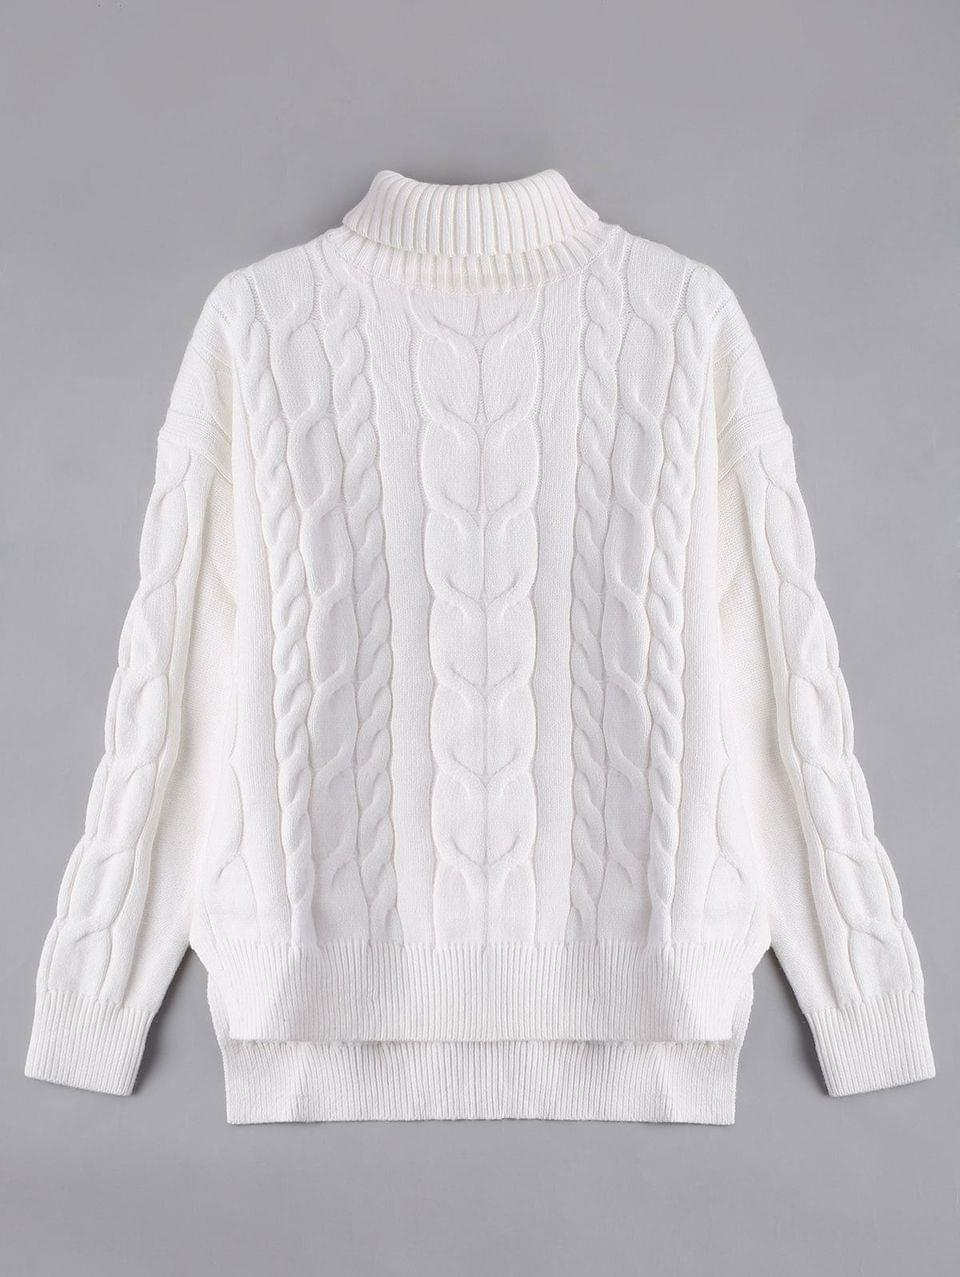 Women's High Low Turtle Neck Cable Knit Sweater - White S